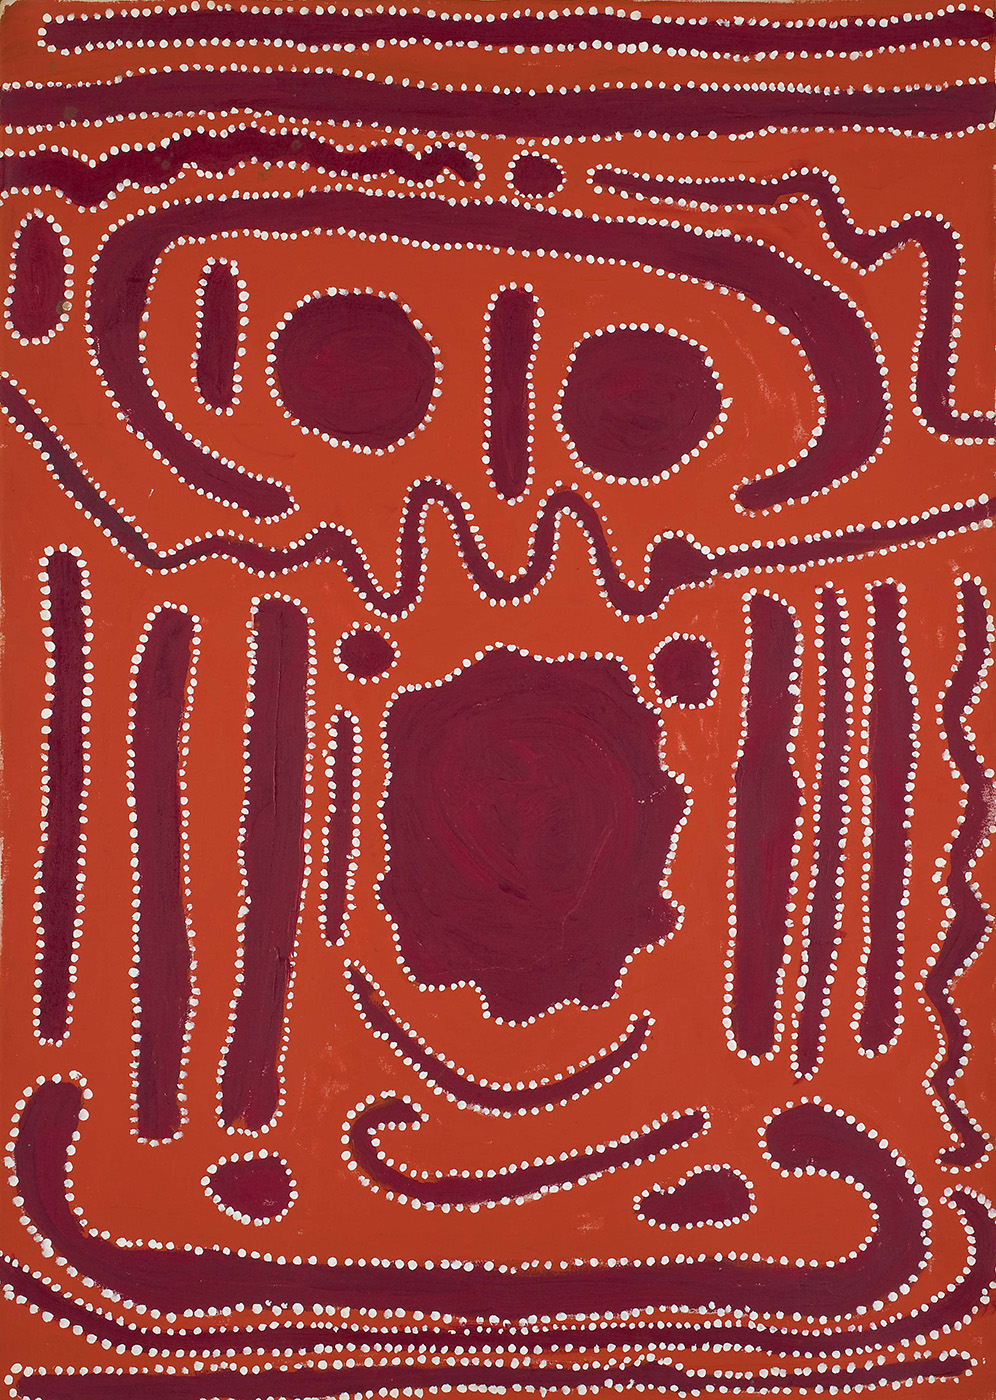 Kumpupirntily, 2008, acrylic on canvas painting - click to view larger image